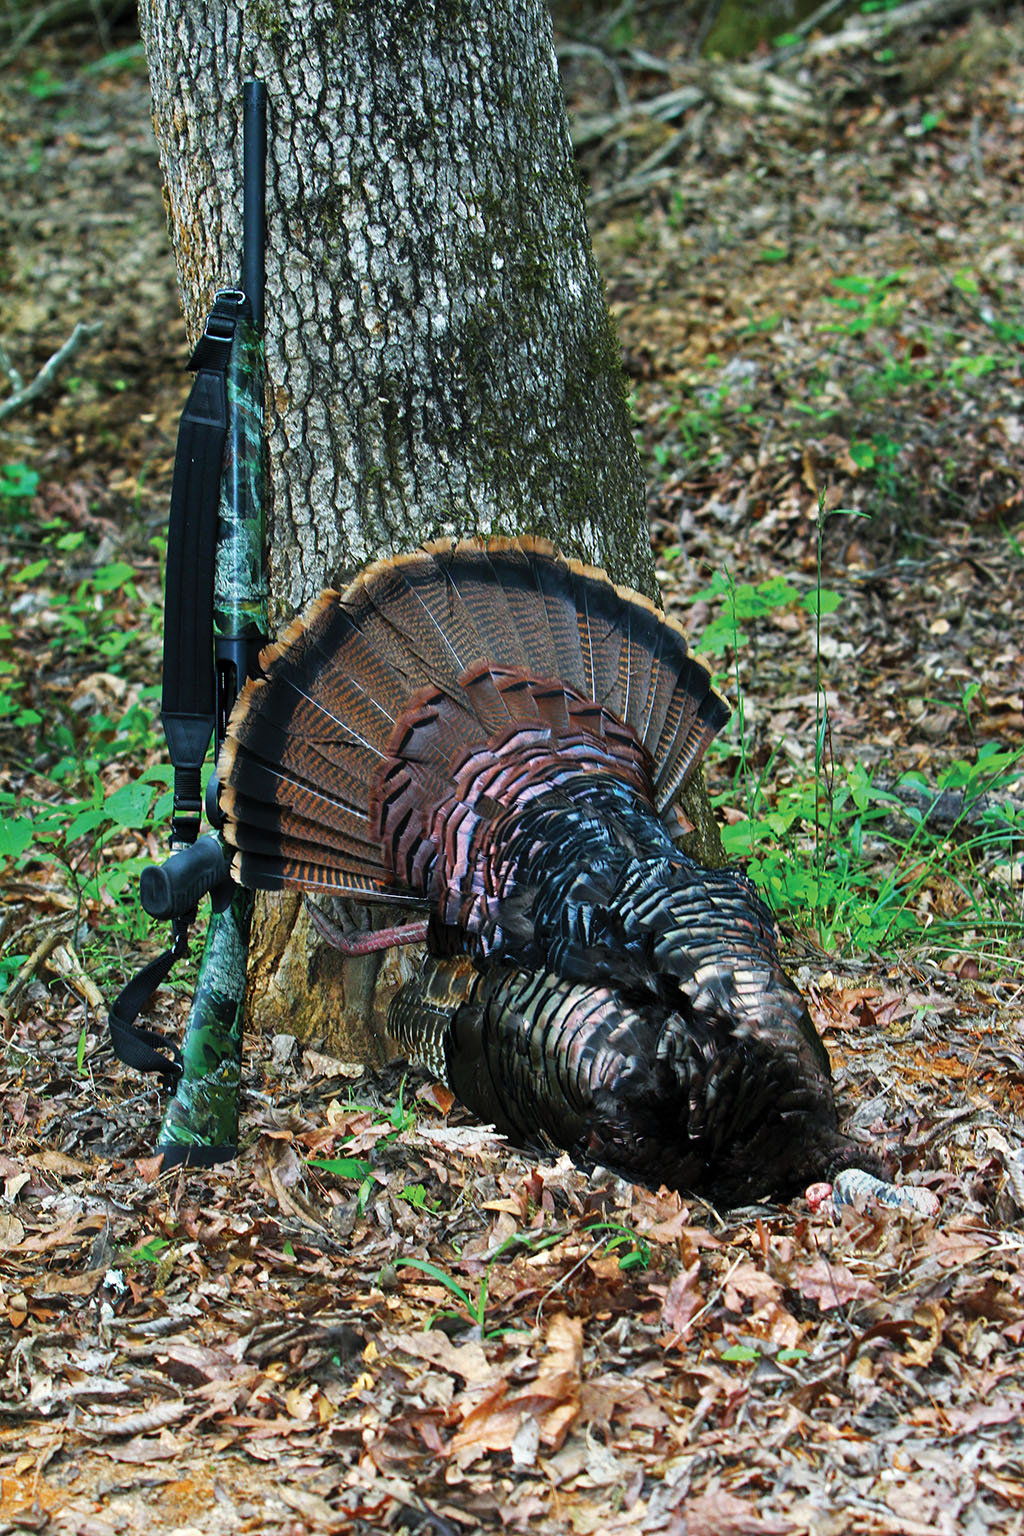 With the first hint of spring, Louisiana turkey hunters are ready to get into the woods. That wild,